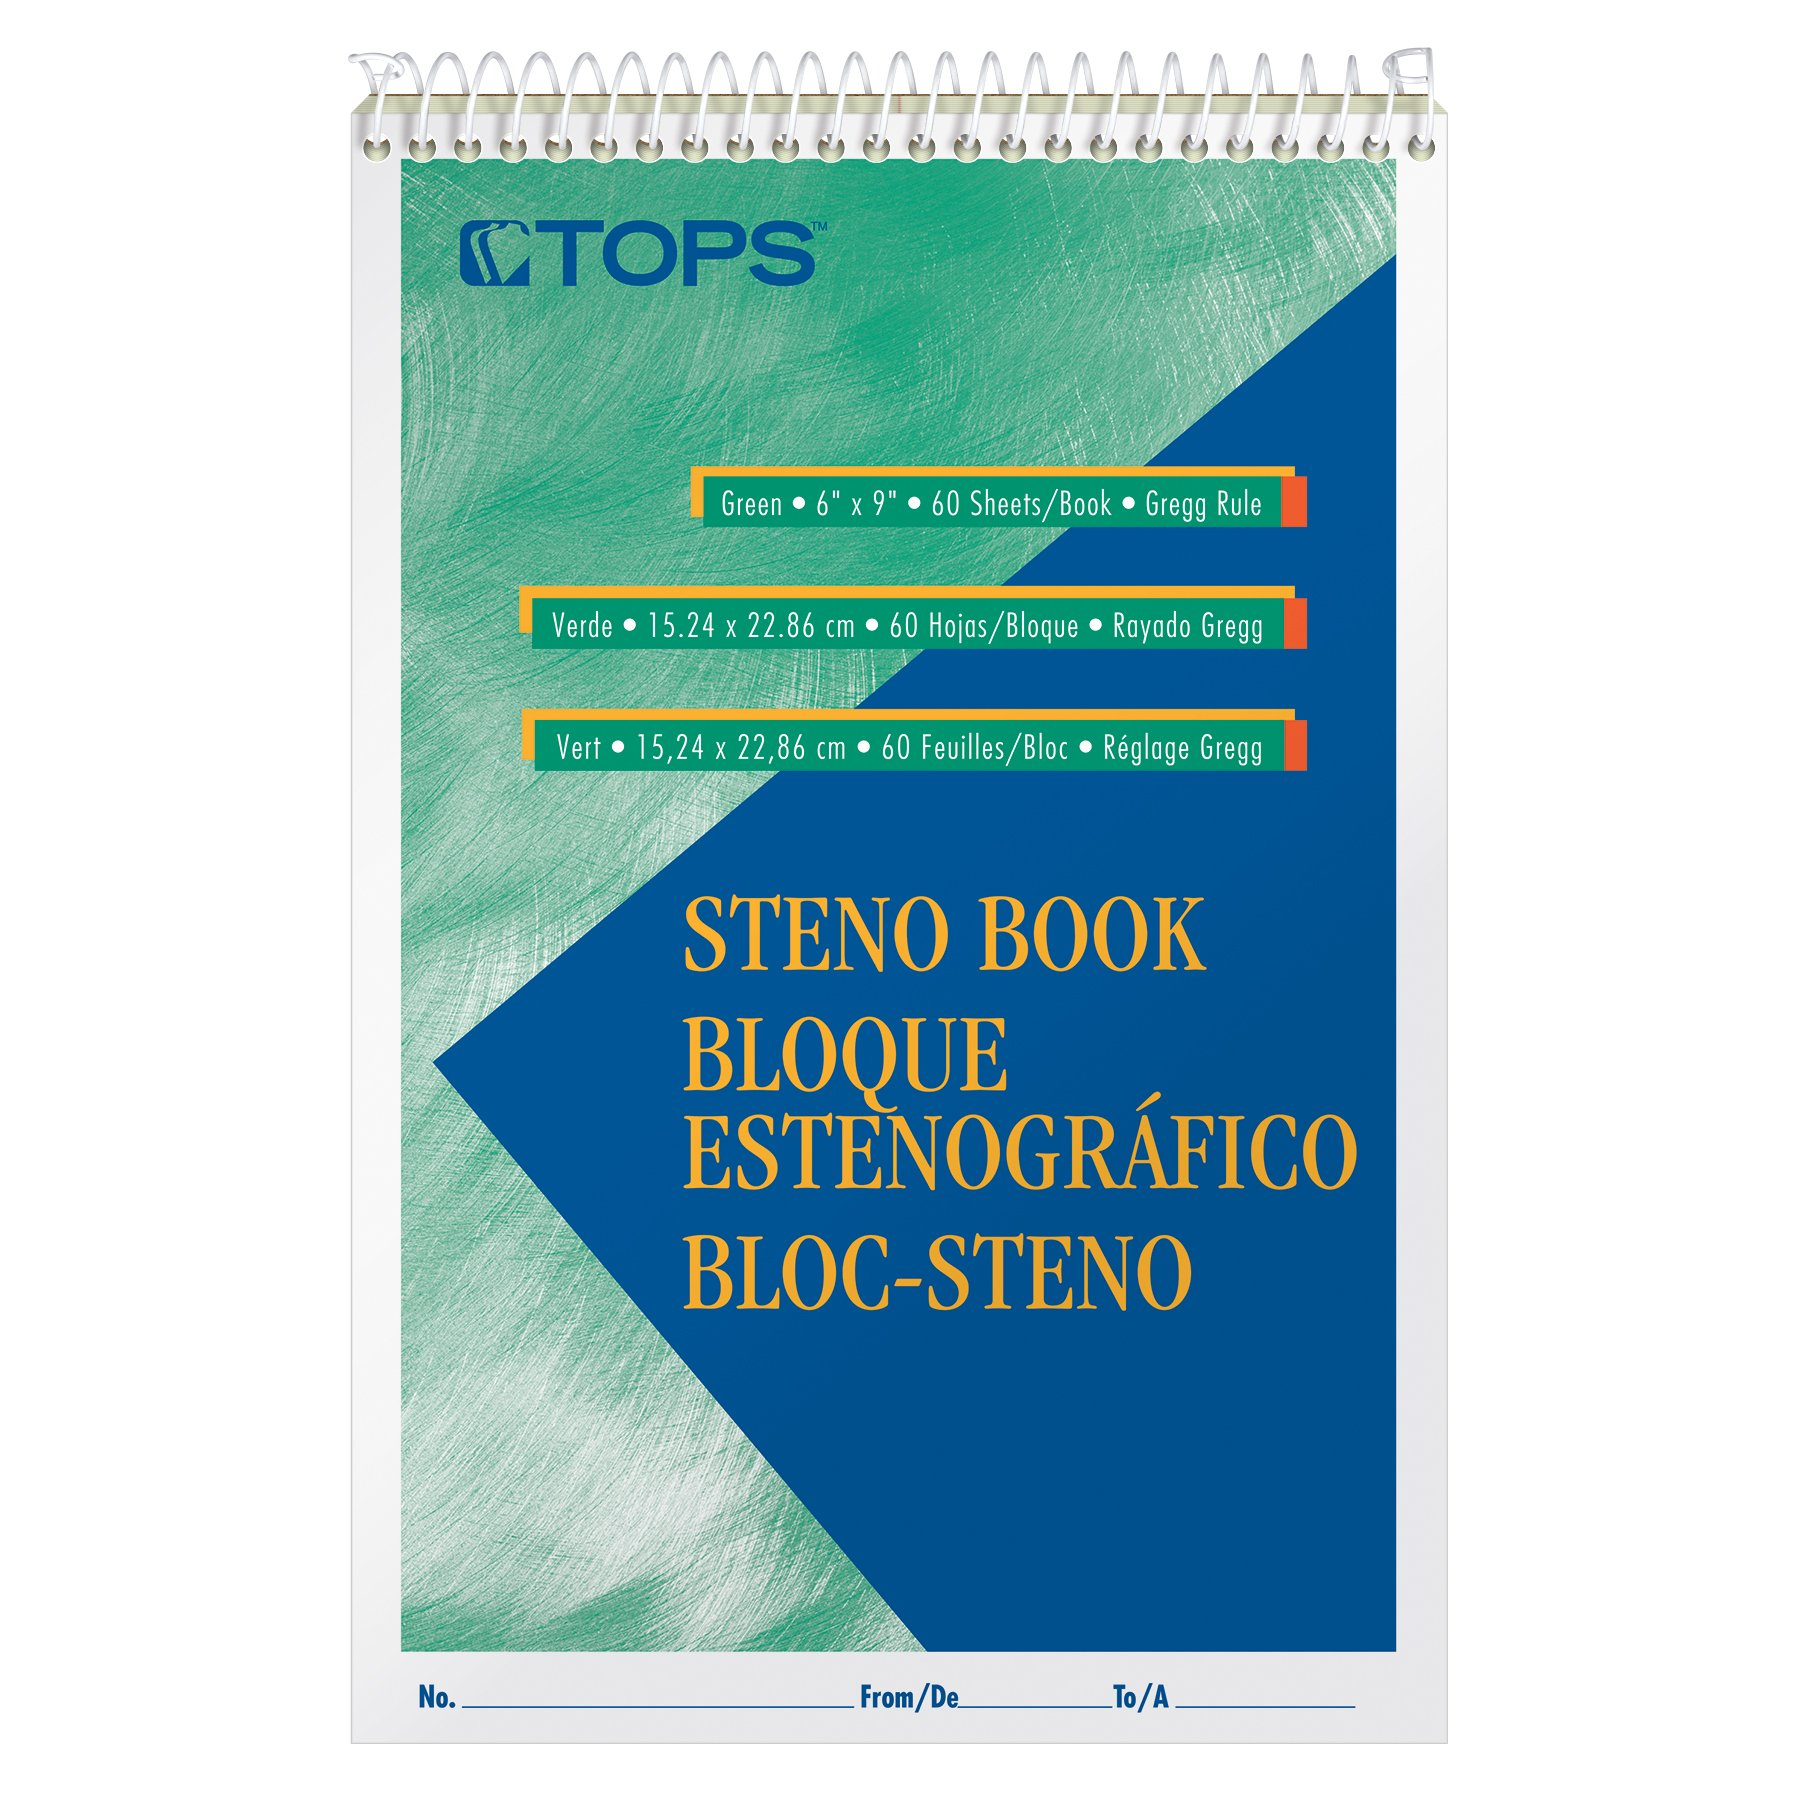 TOPS Steno Books, 6'' x 9'', Gregg Rule, Green Tint Paper, 60 Sheets, 12 Pack (8001) by TOPS